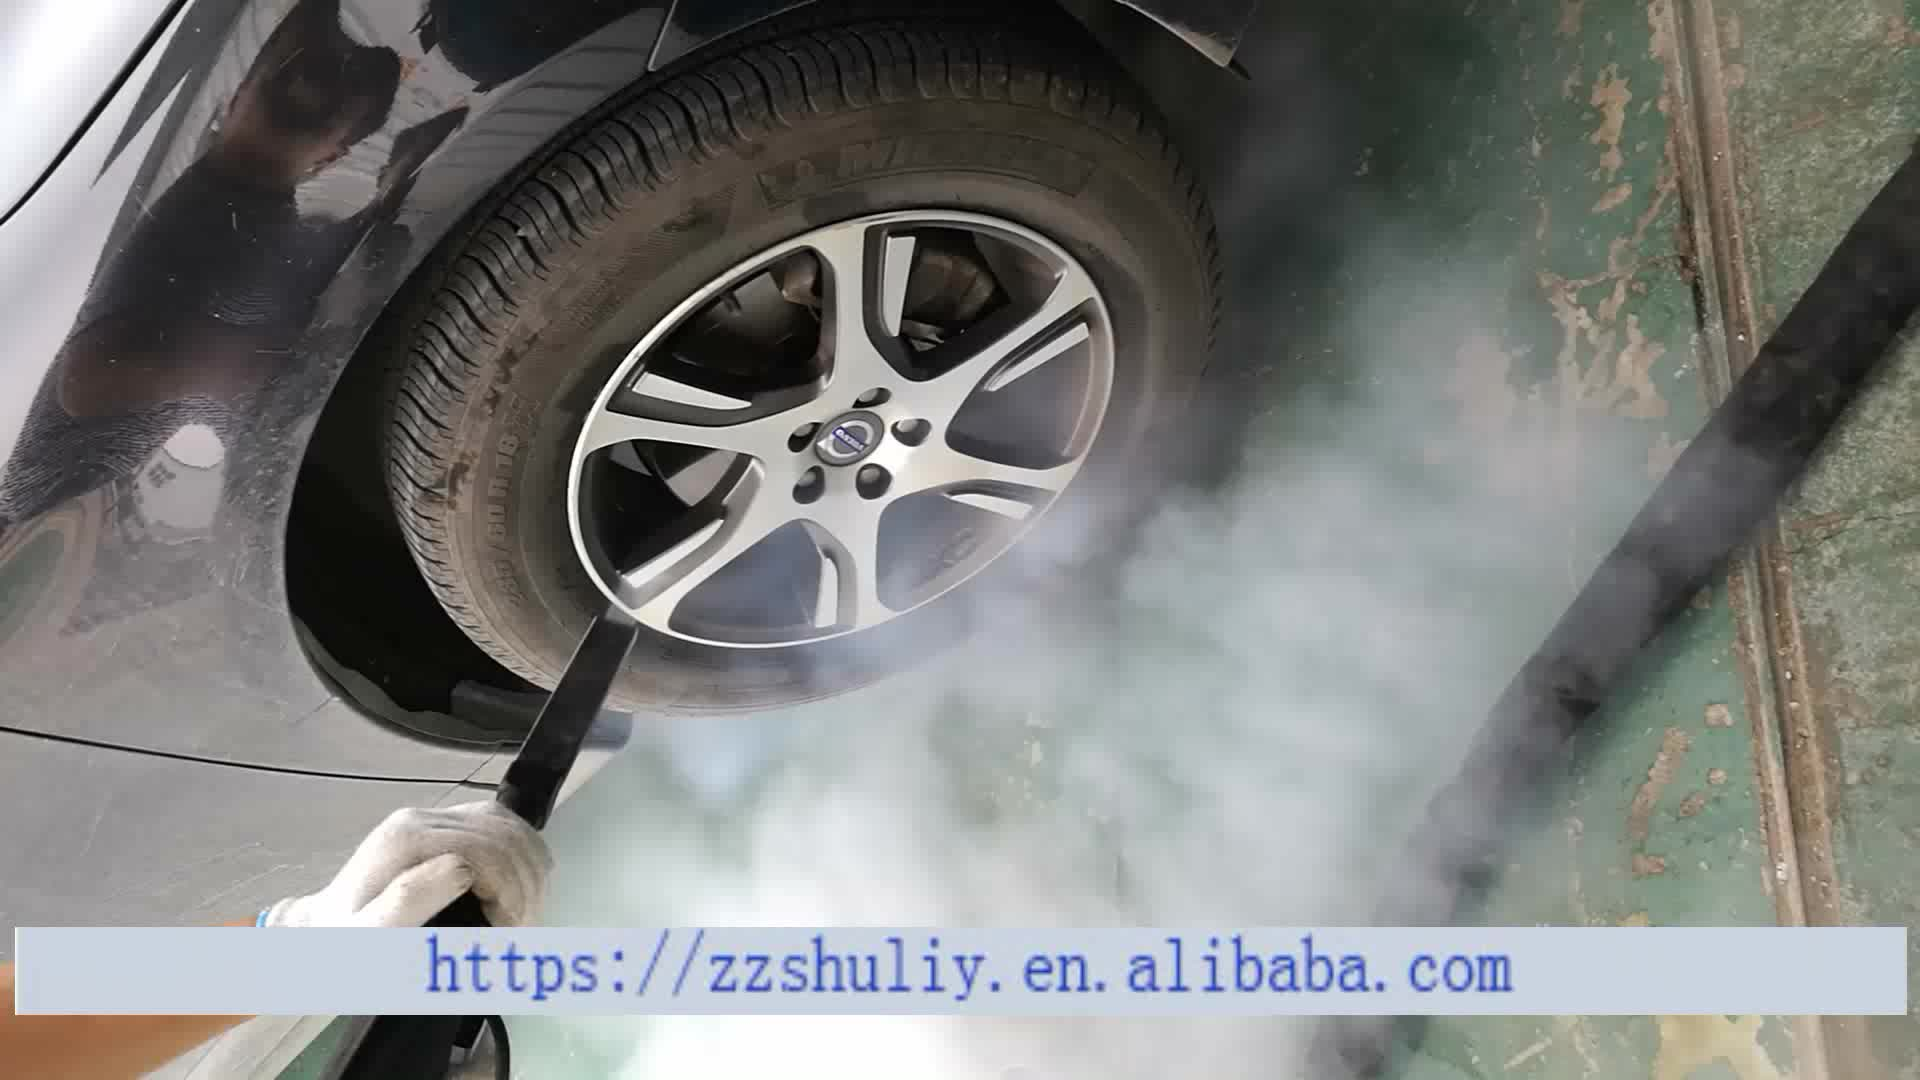 new products looking for distributors dry ice production portable dry ice maker dry ice blasting machine